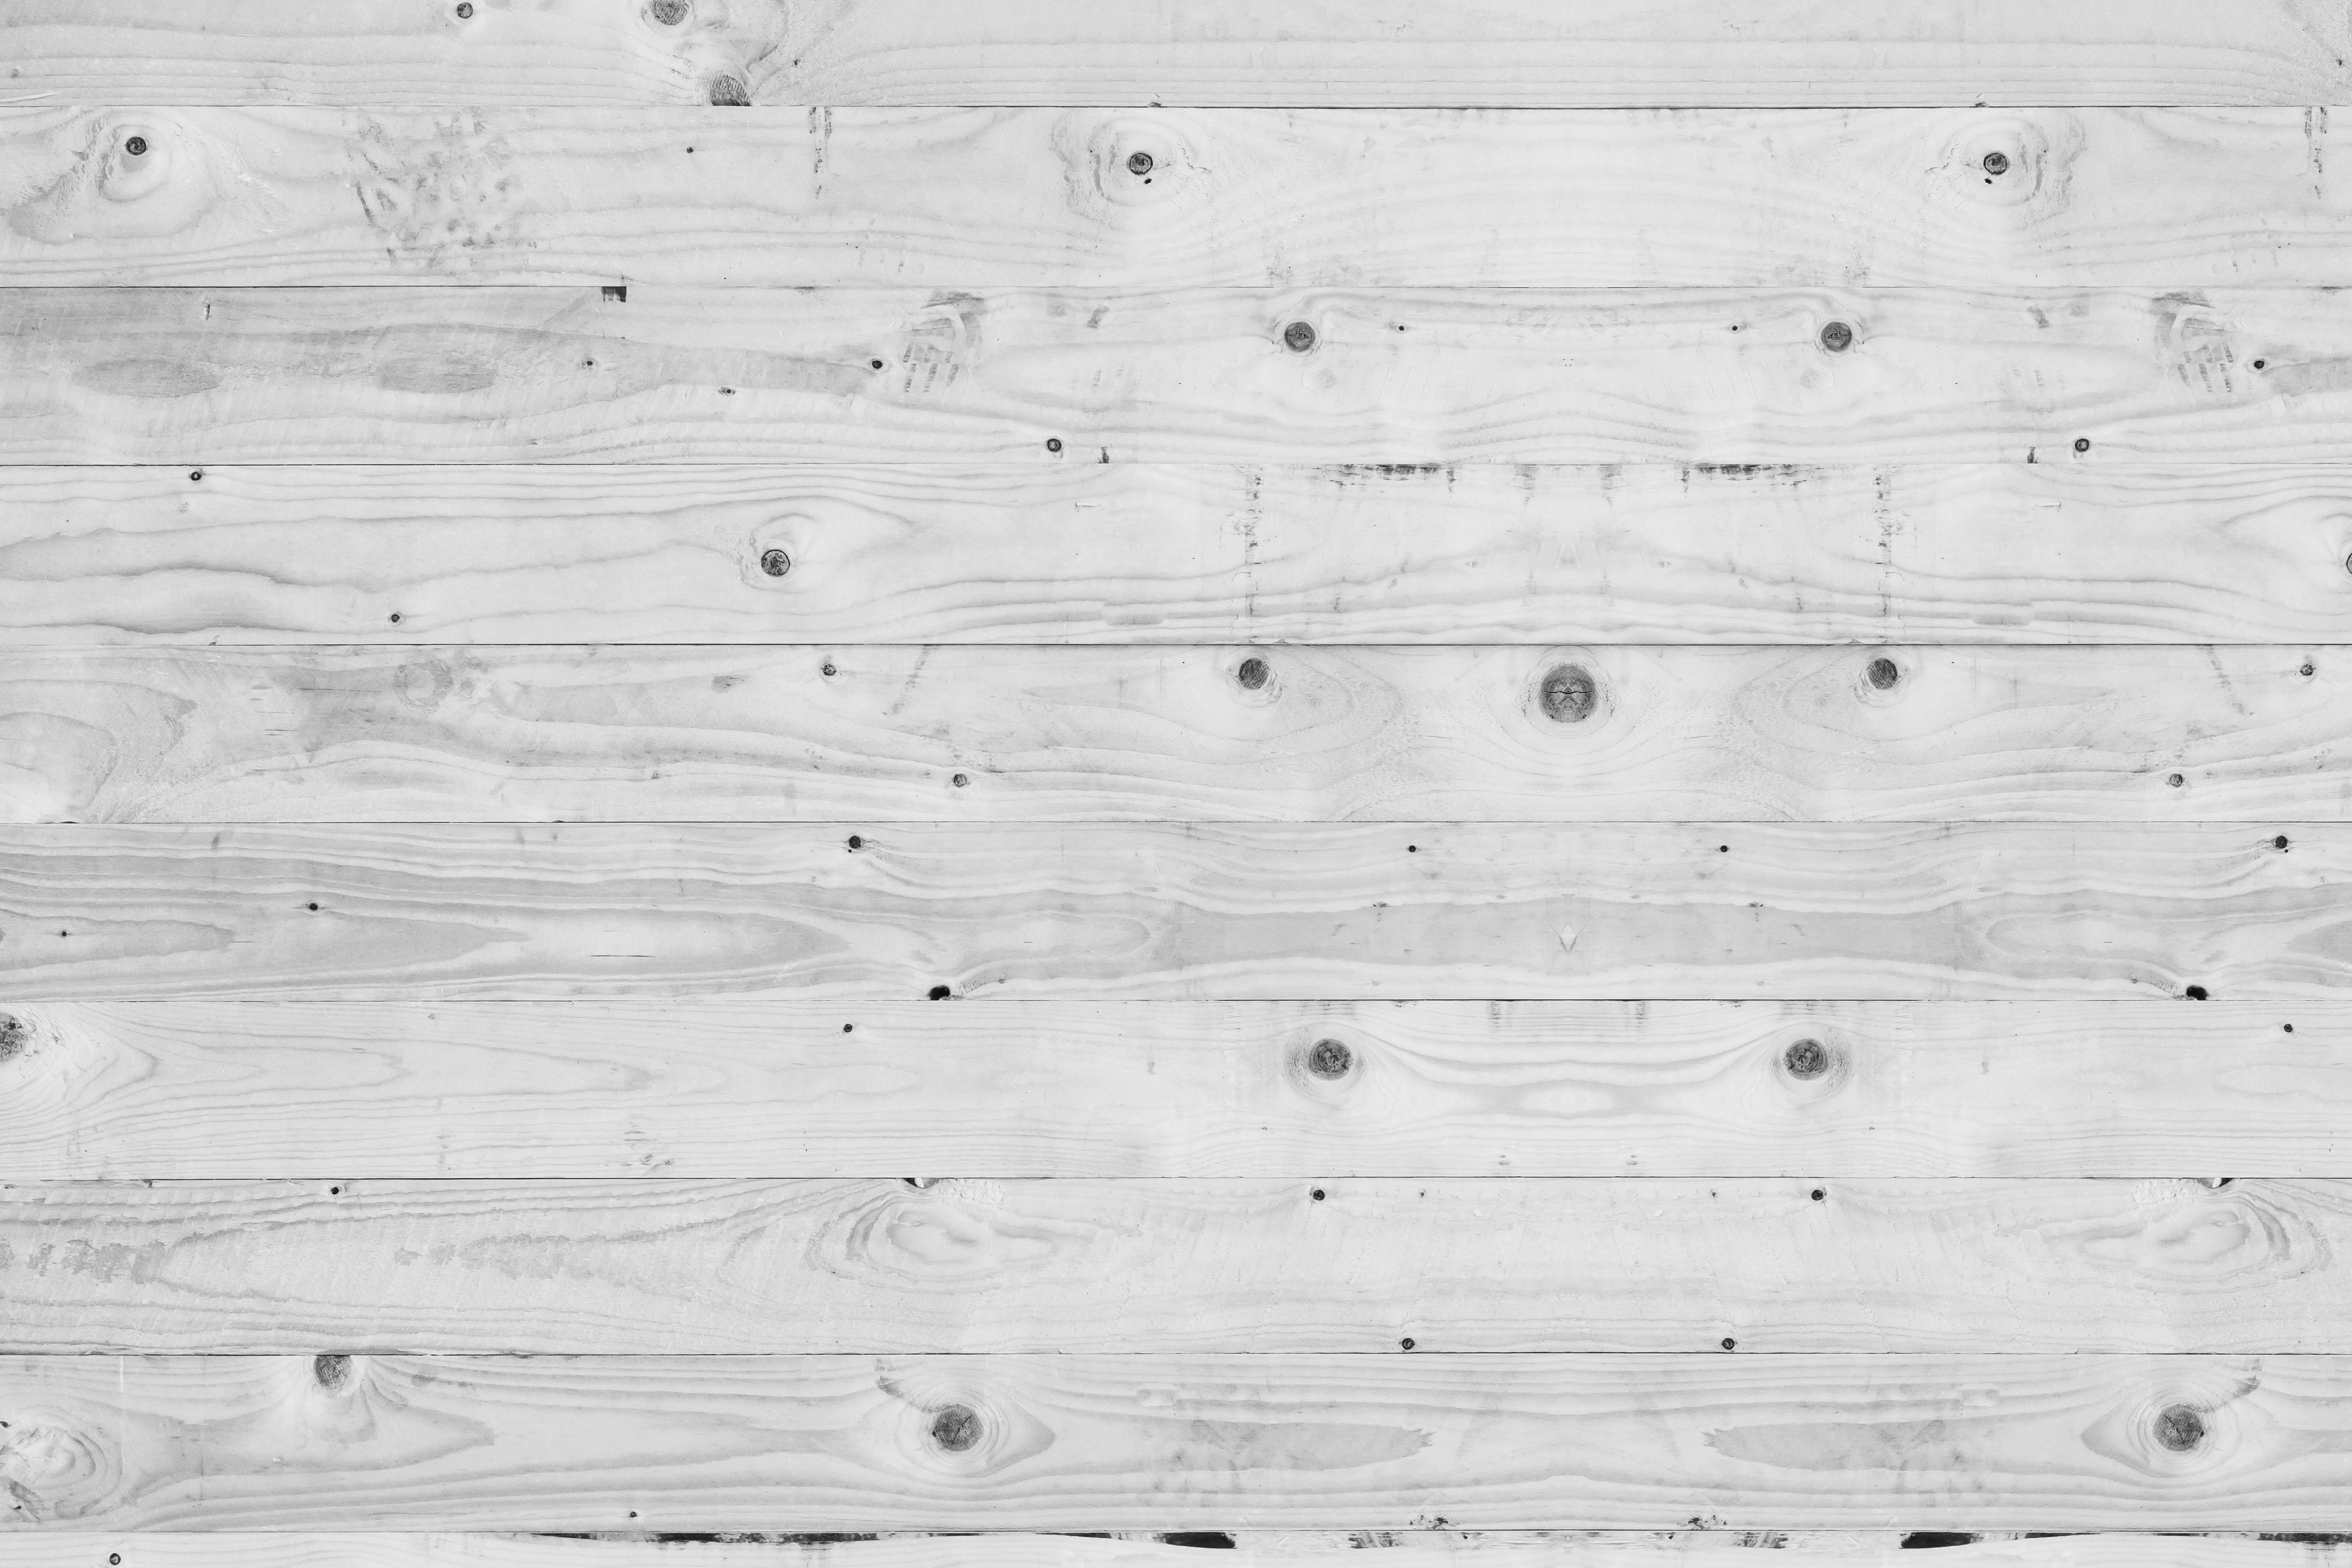 grunge white wood and rustic wood background texture - juegosrev.com